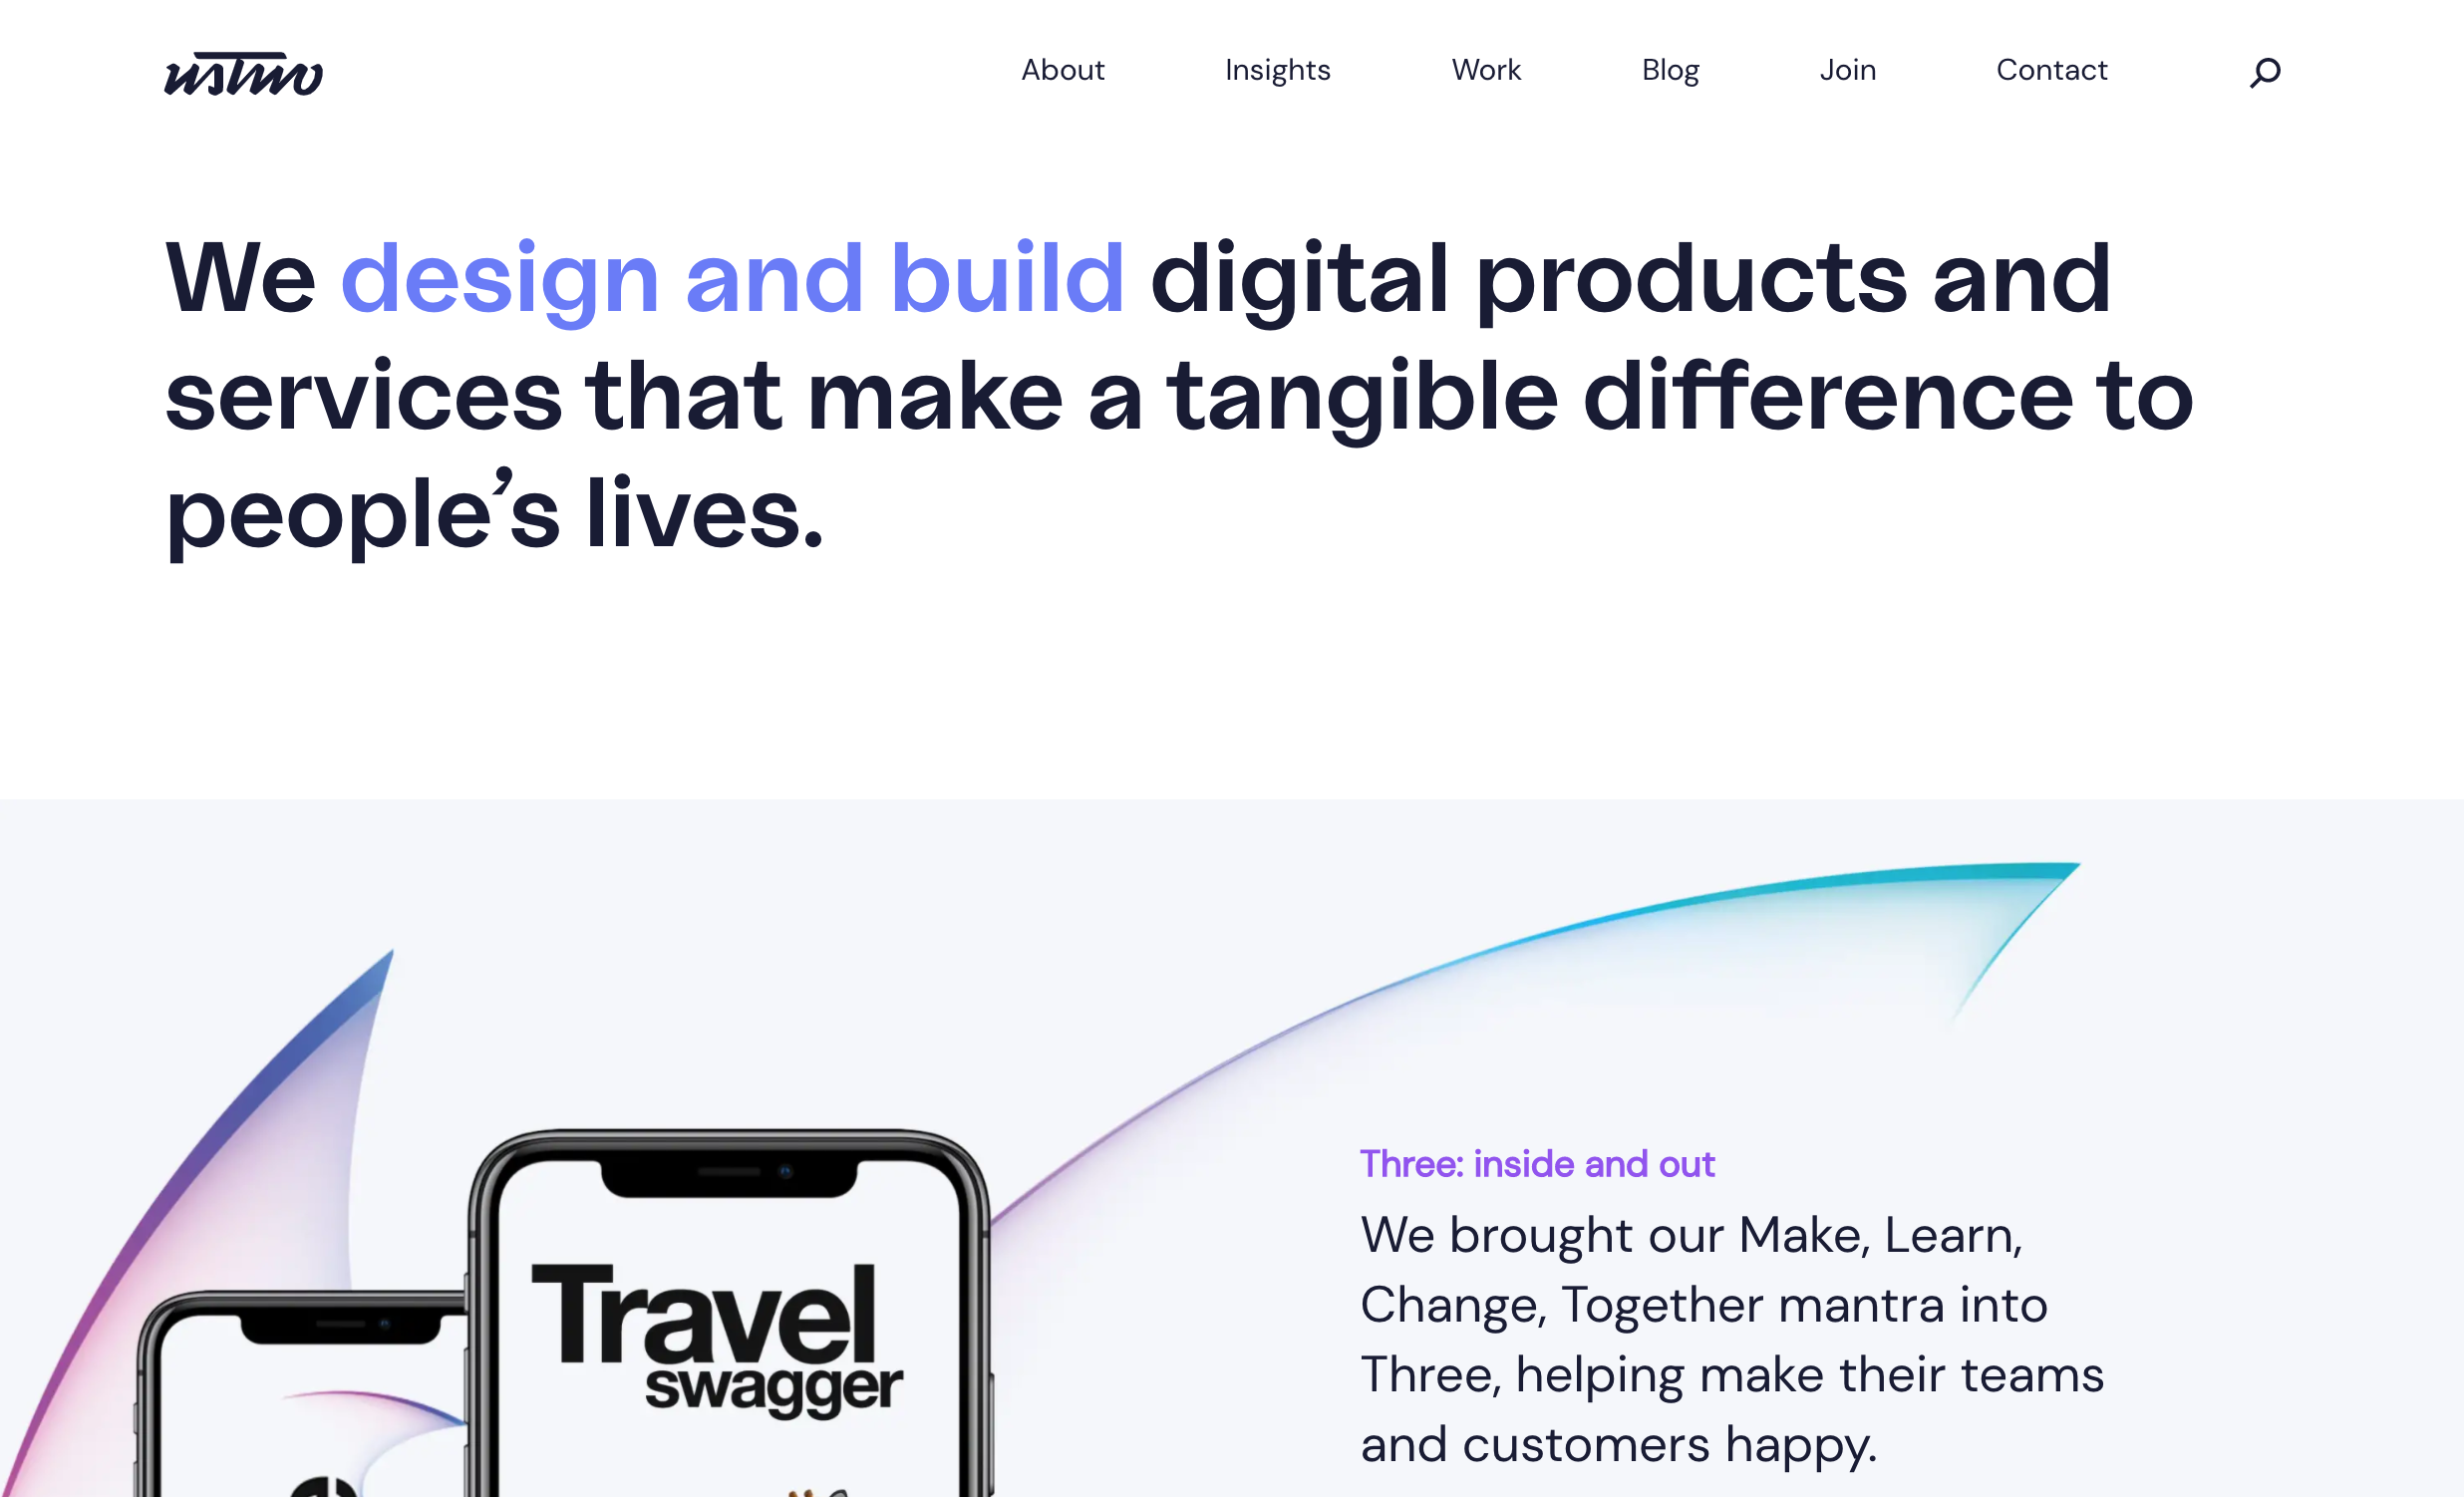 Ustwo — a mobile application design company